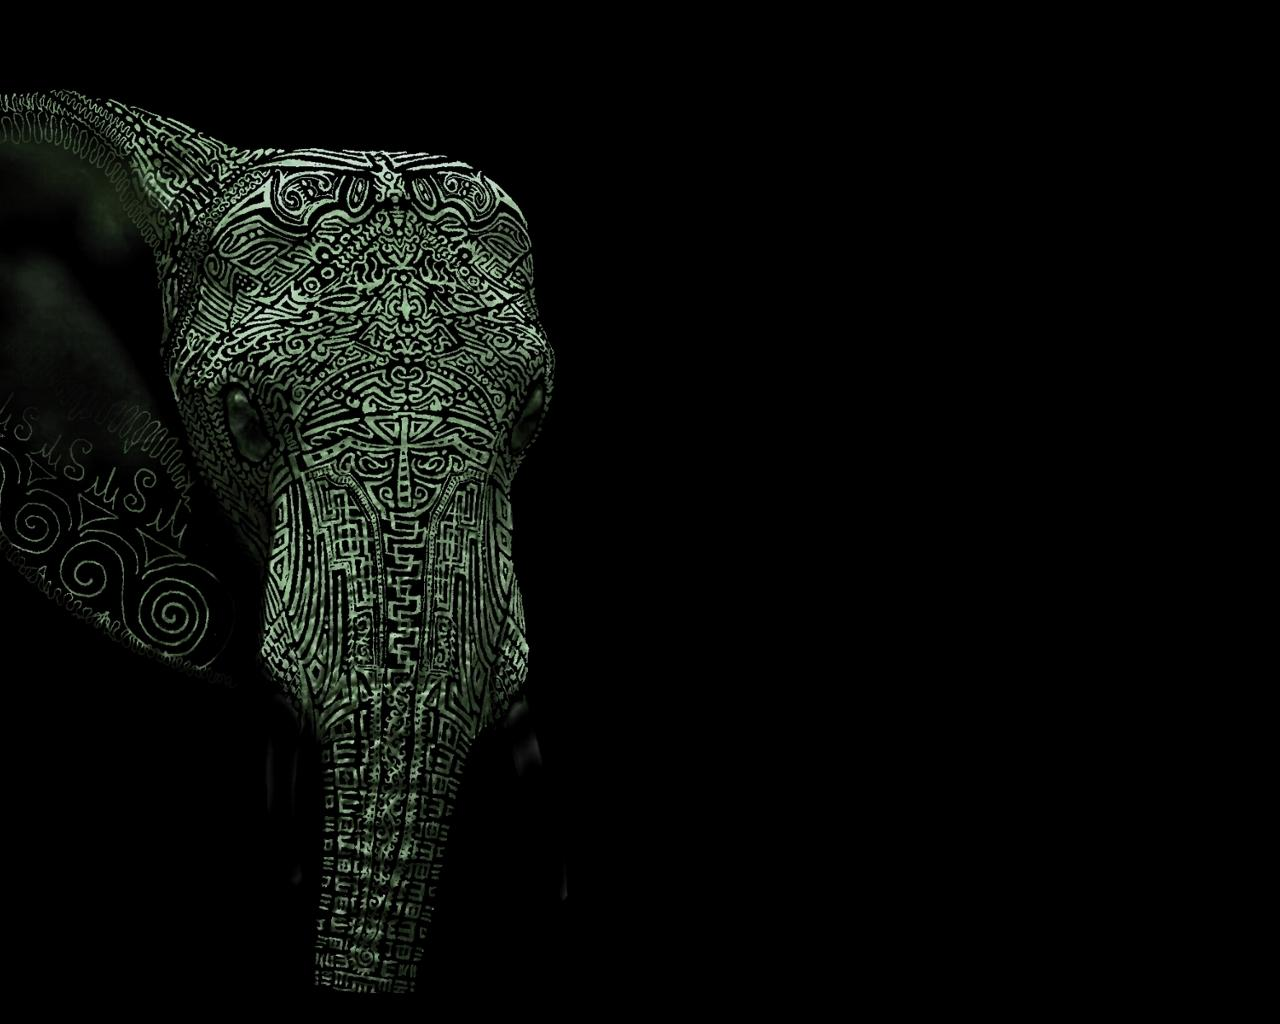 Hd wallpaper tattoo - Elephant The Free Tattoo Wallpaper 1280x1024 Full Hd Wallpapers